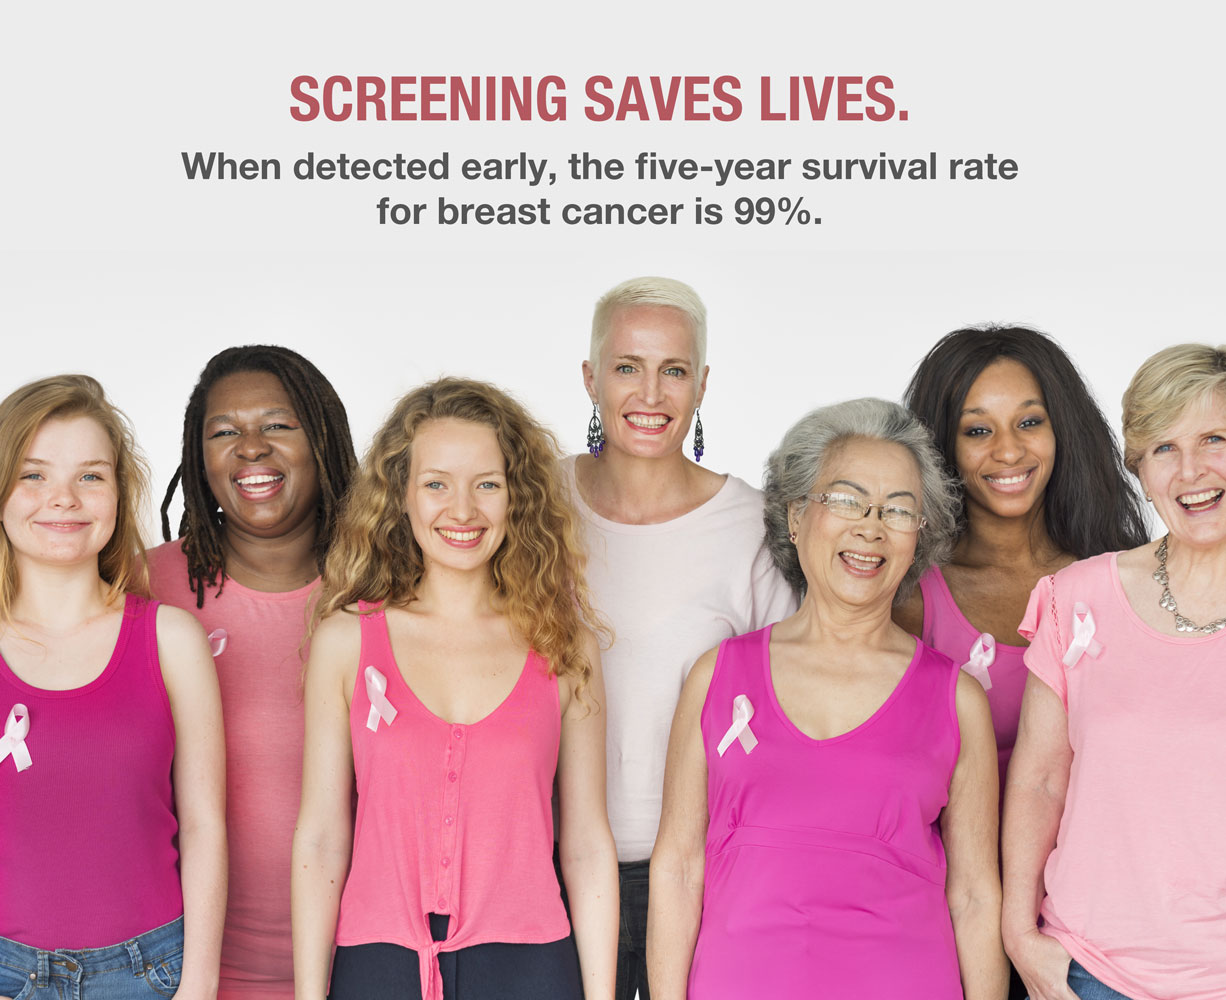 Screening saves lives. When detected early, the five-year survival rate for breast cancer is 99%.